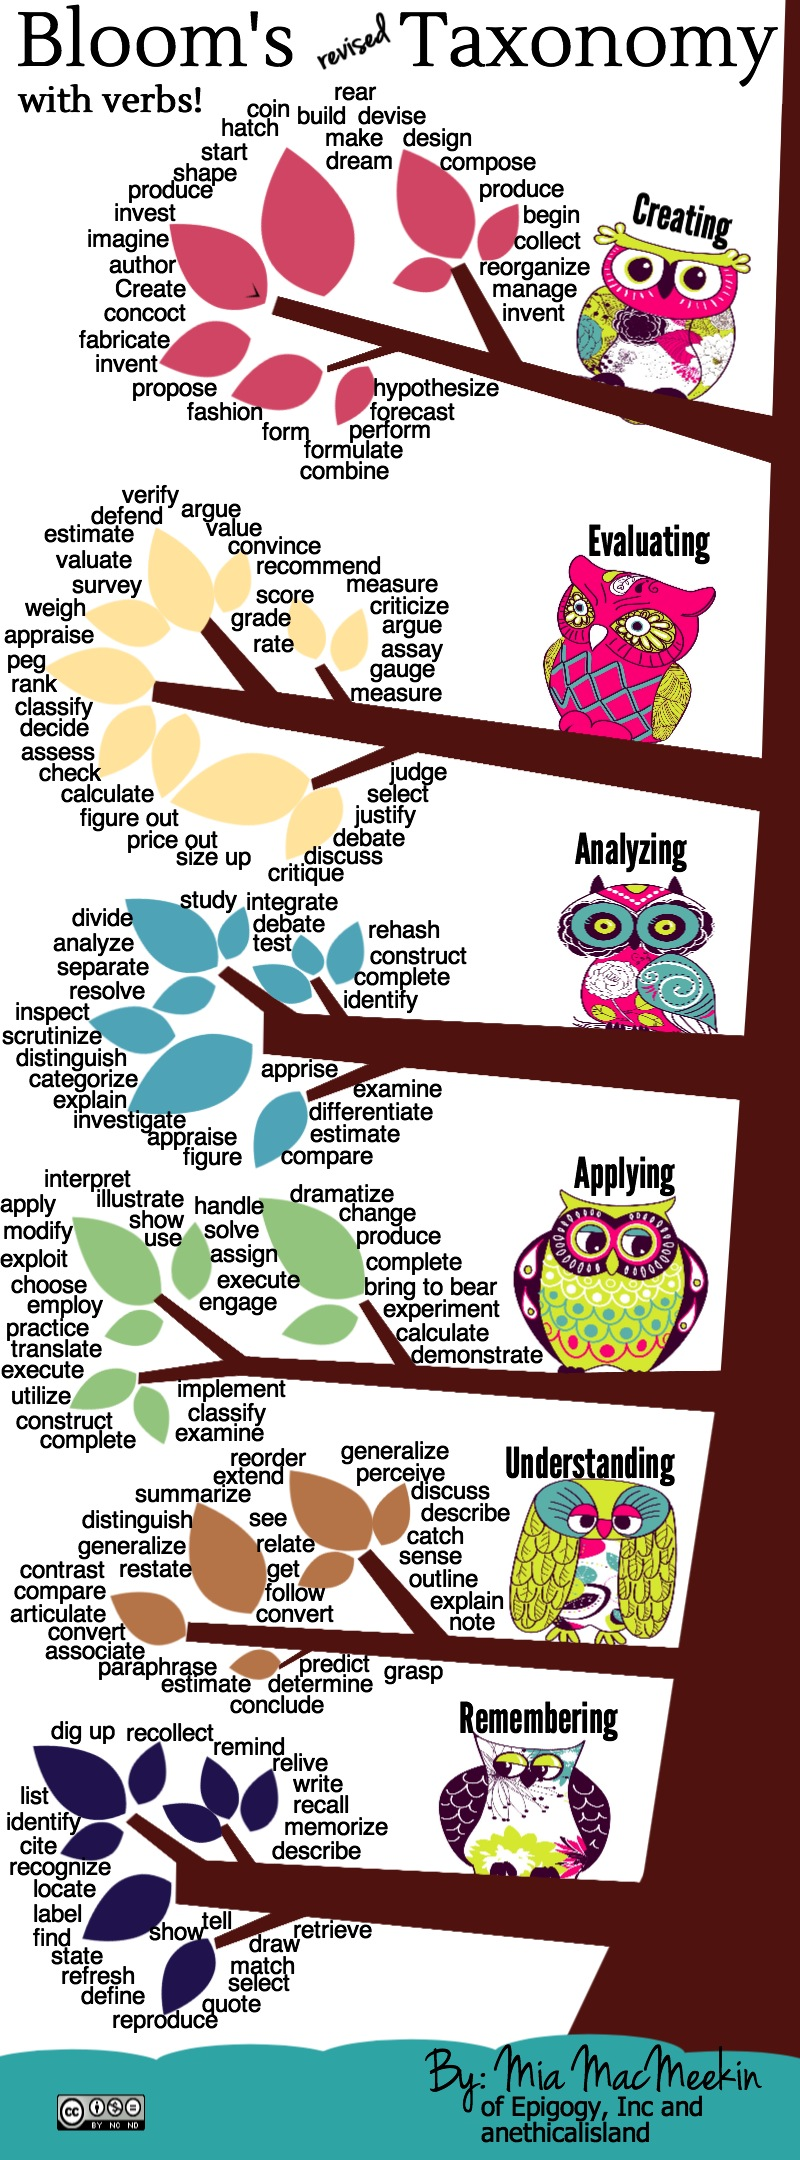 Bloom's Revised Taxonomy with Verbs by Mia MacMeekin